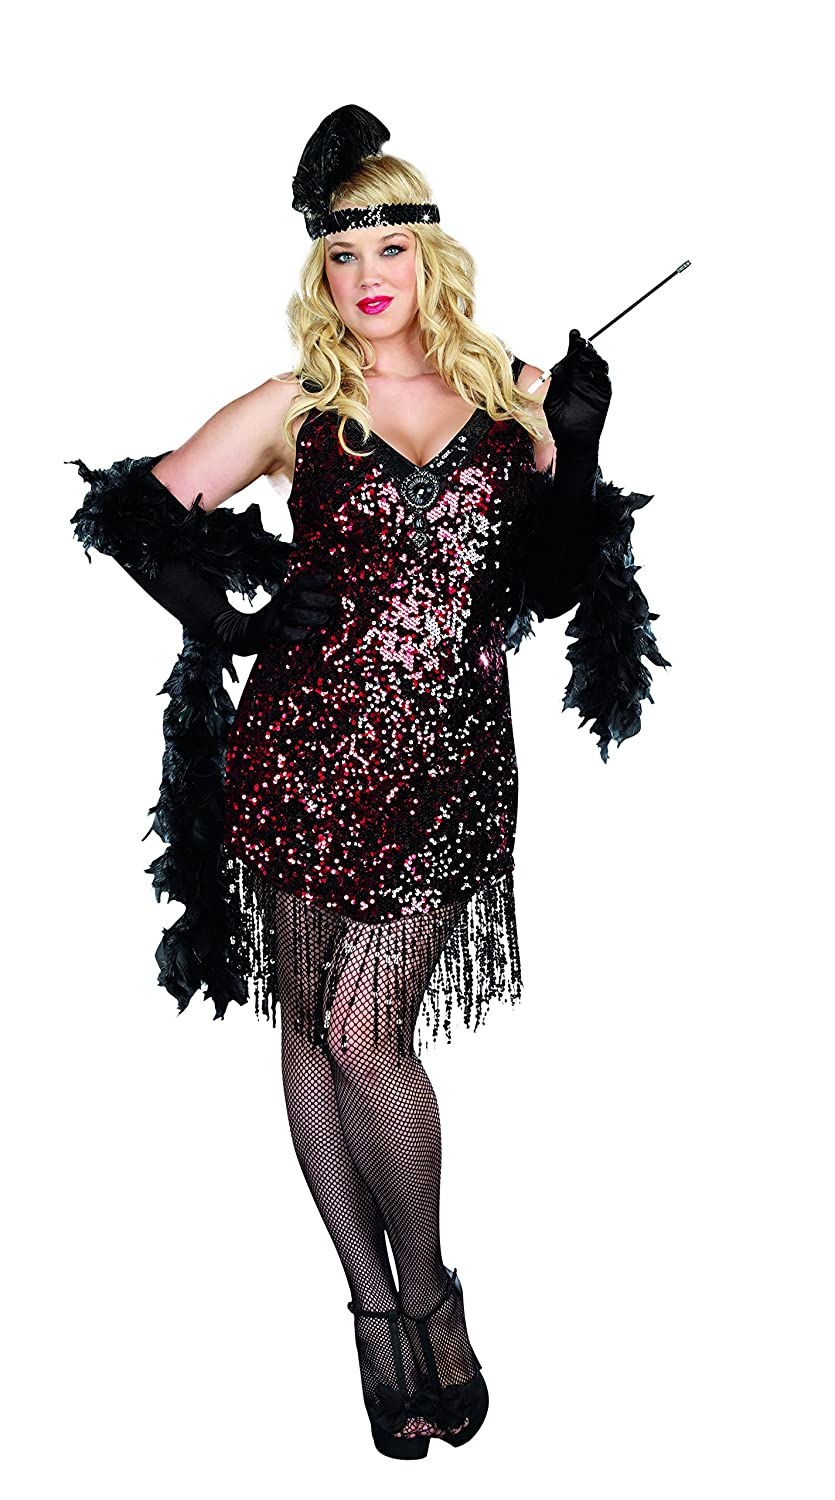 1920s Costumes: Flapper, Great Gatsby, Gangster Girl Dreamgirl Womens Plus-Size Dames Like Us Costume $66.92 AT vintagedancer.com